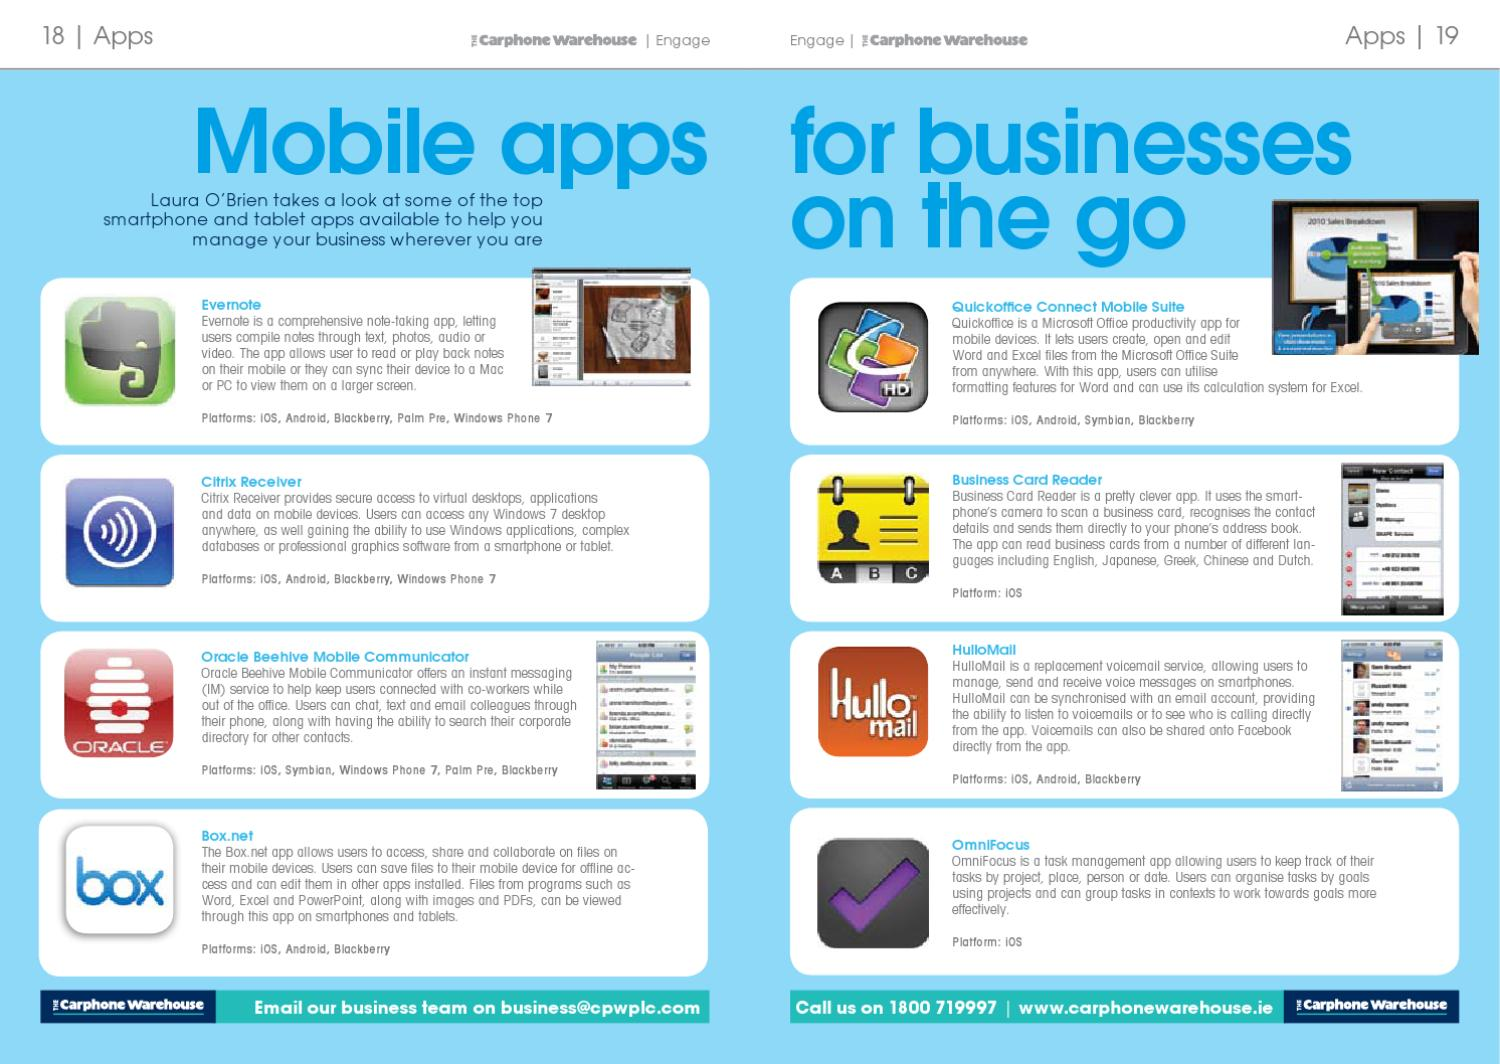 The carphone warehouse engage business guide june 2011 by the the carphone warehouse engage business guide june 2011 by the carphone warehouse issuu reheart Images